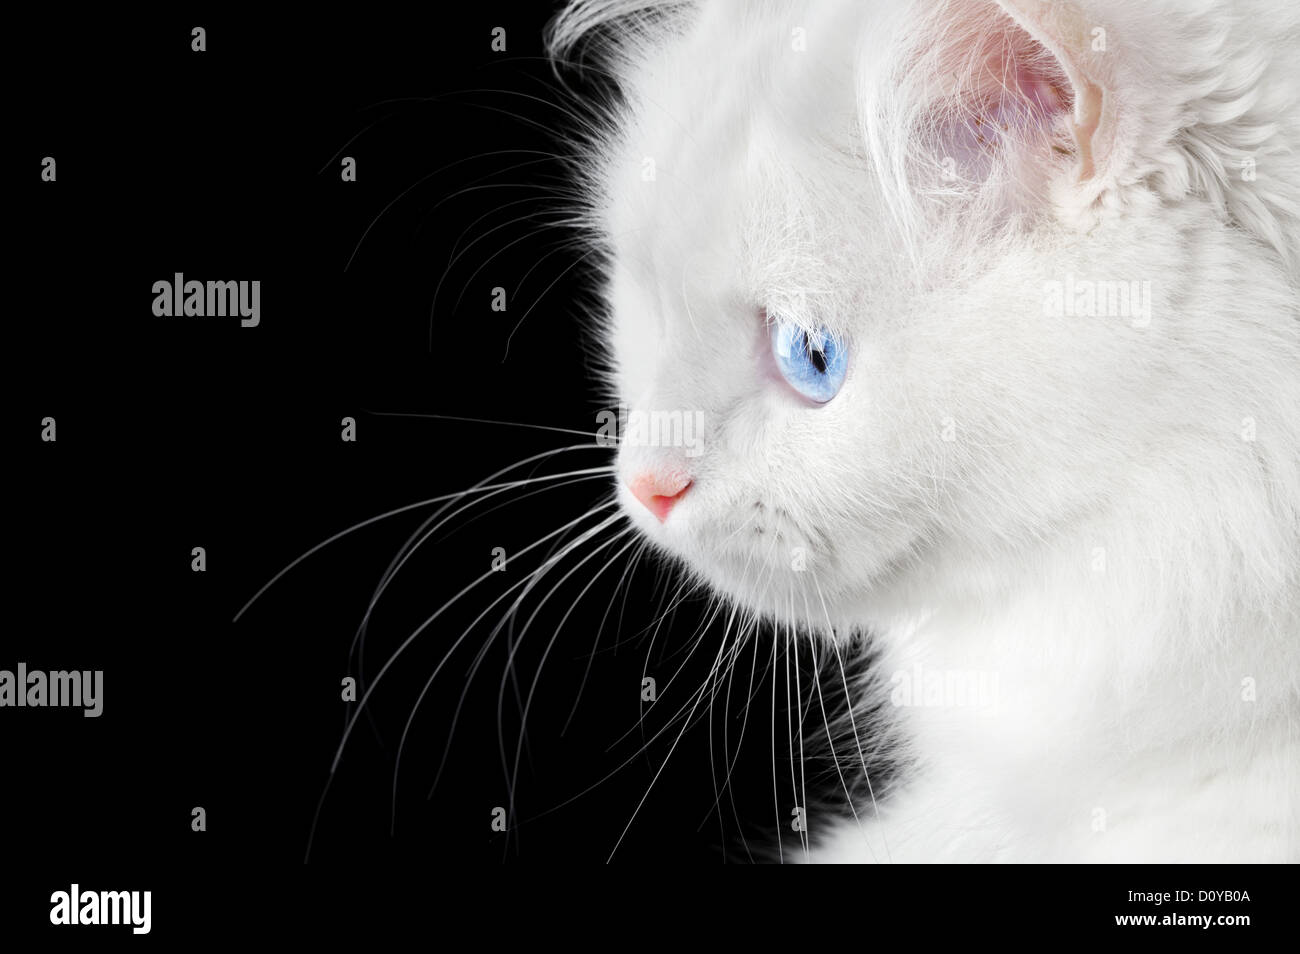 Portrait of a white cat - Stock Image